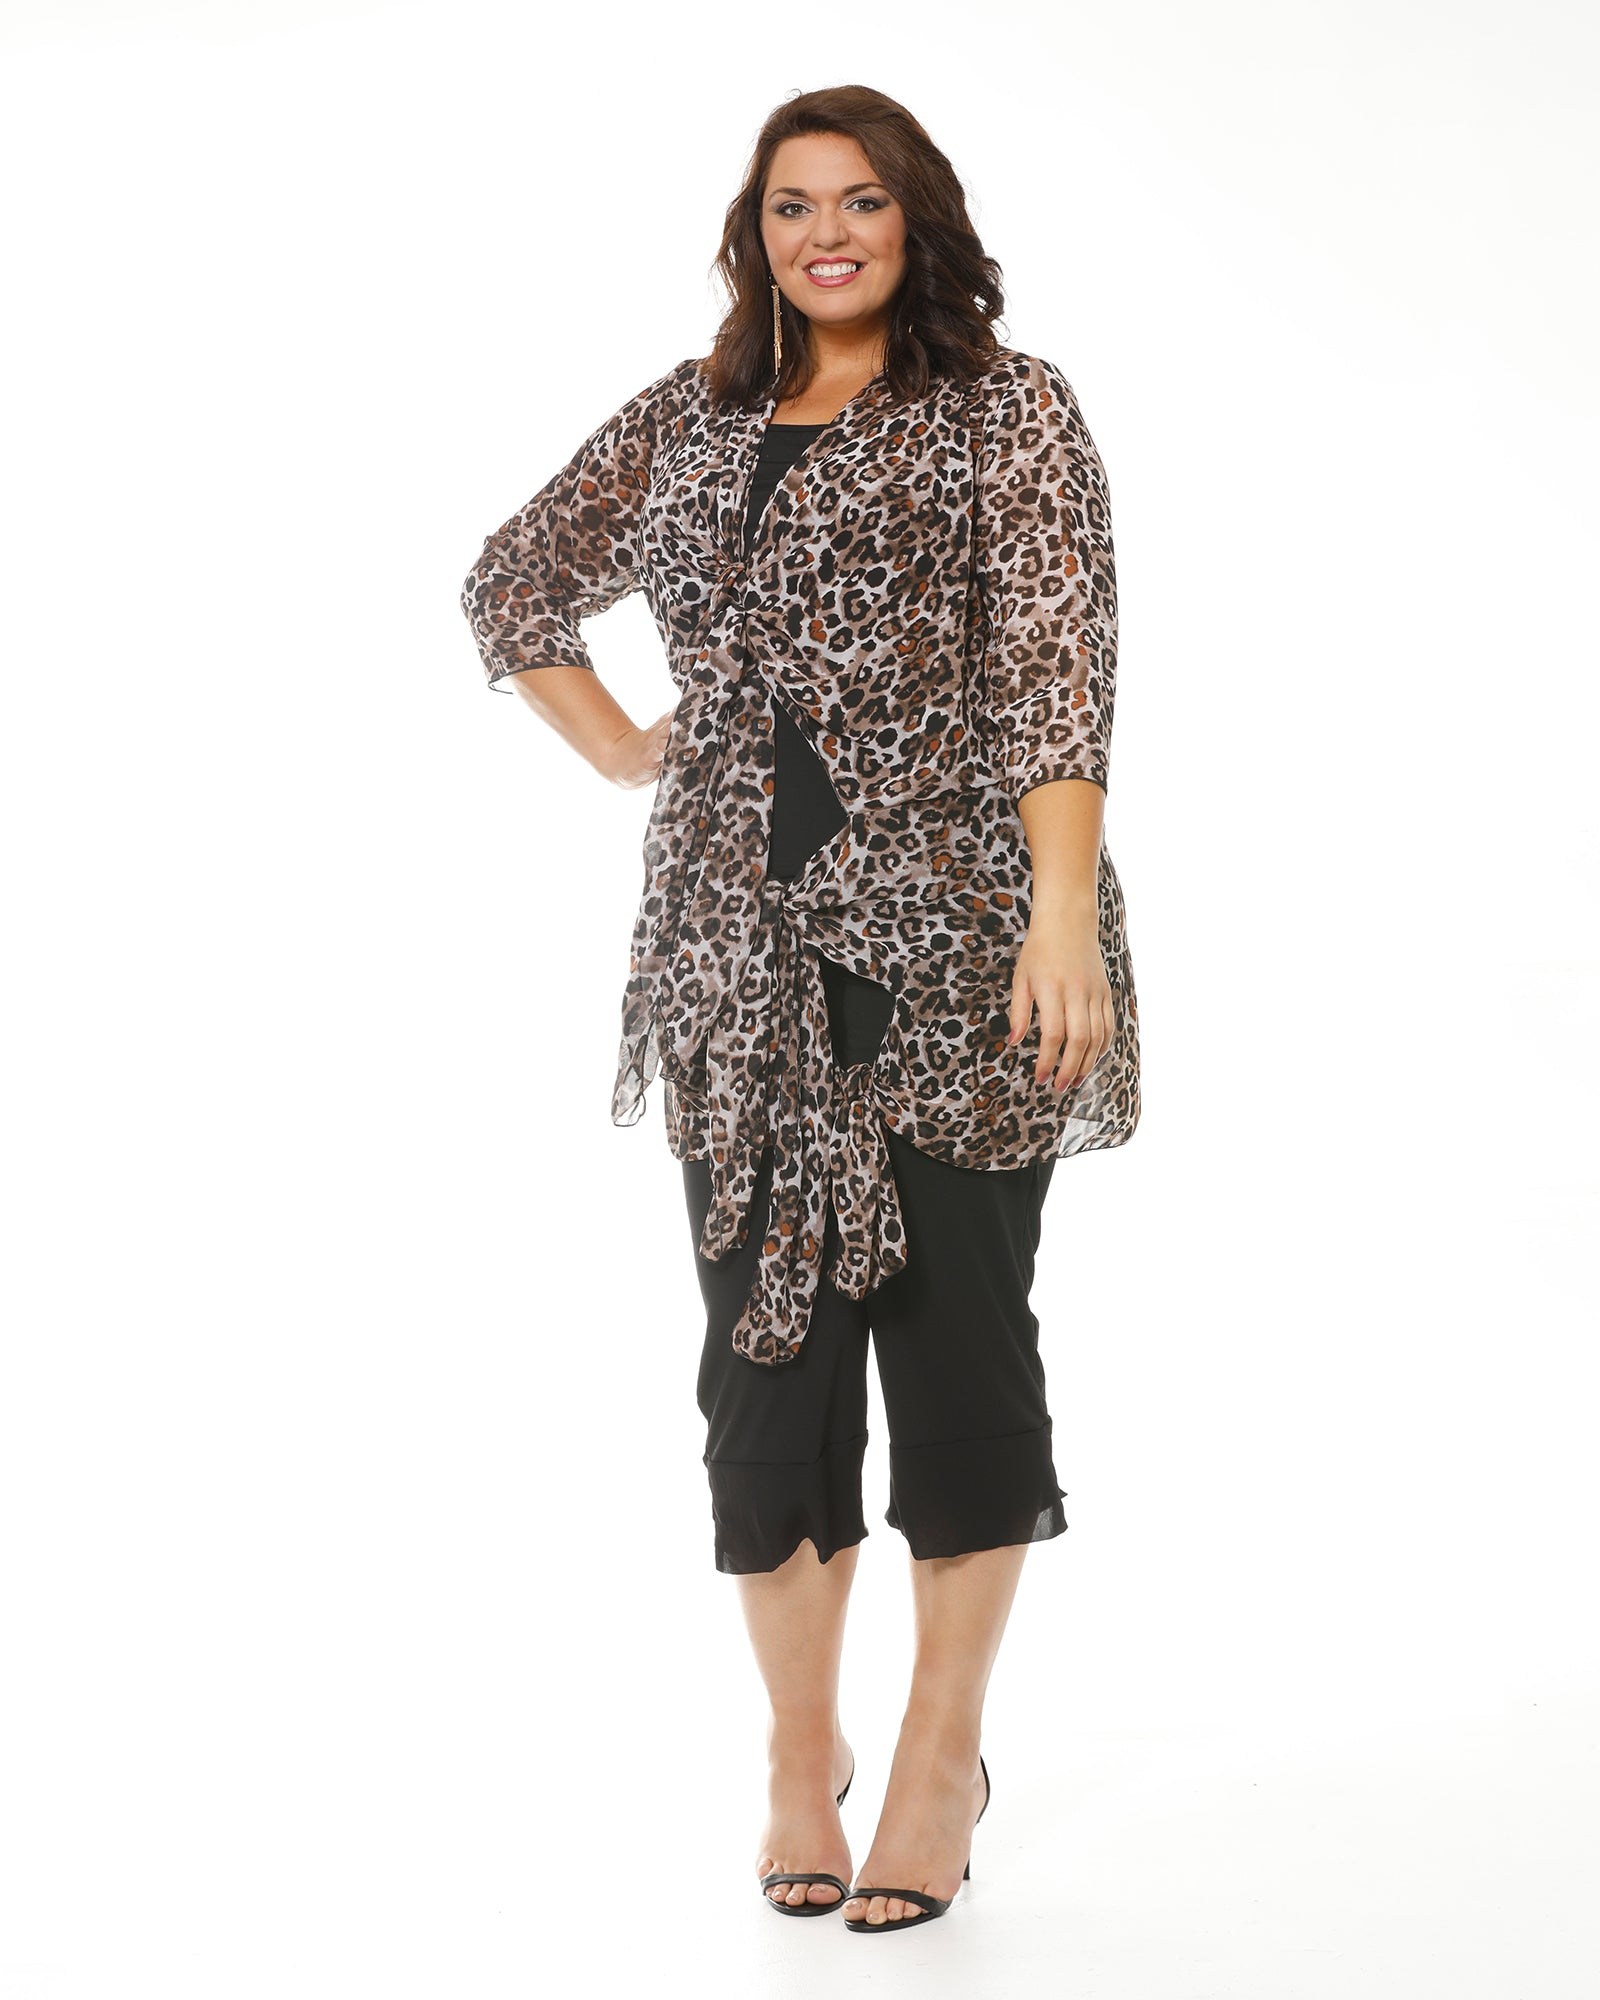 fa2d3161669 Plus Size Clothing sizes 12-26. Free AU Delivery Over  100